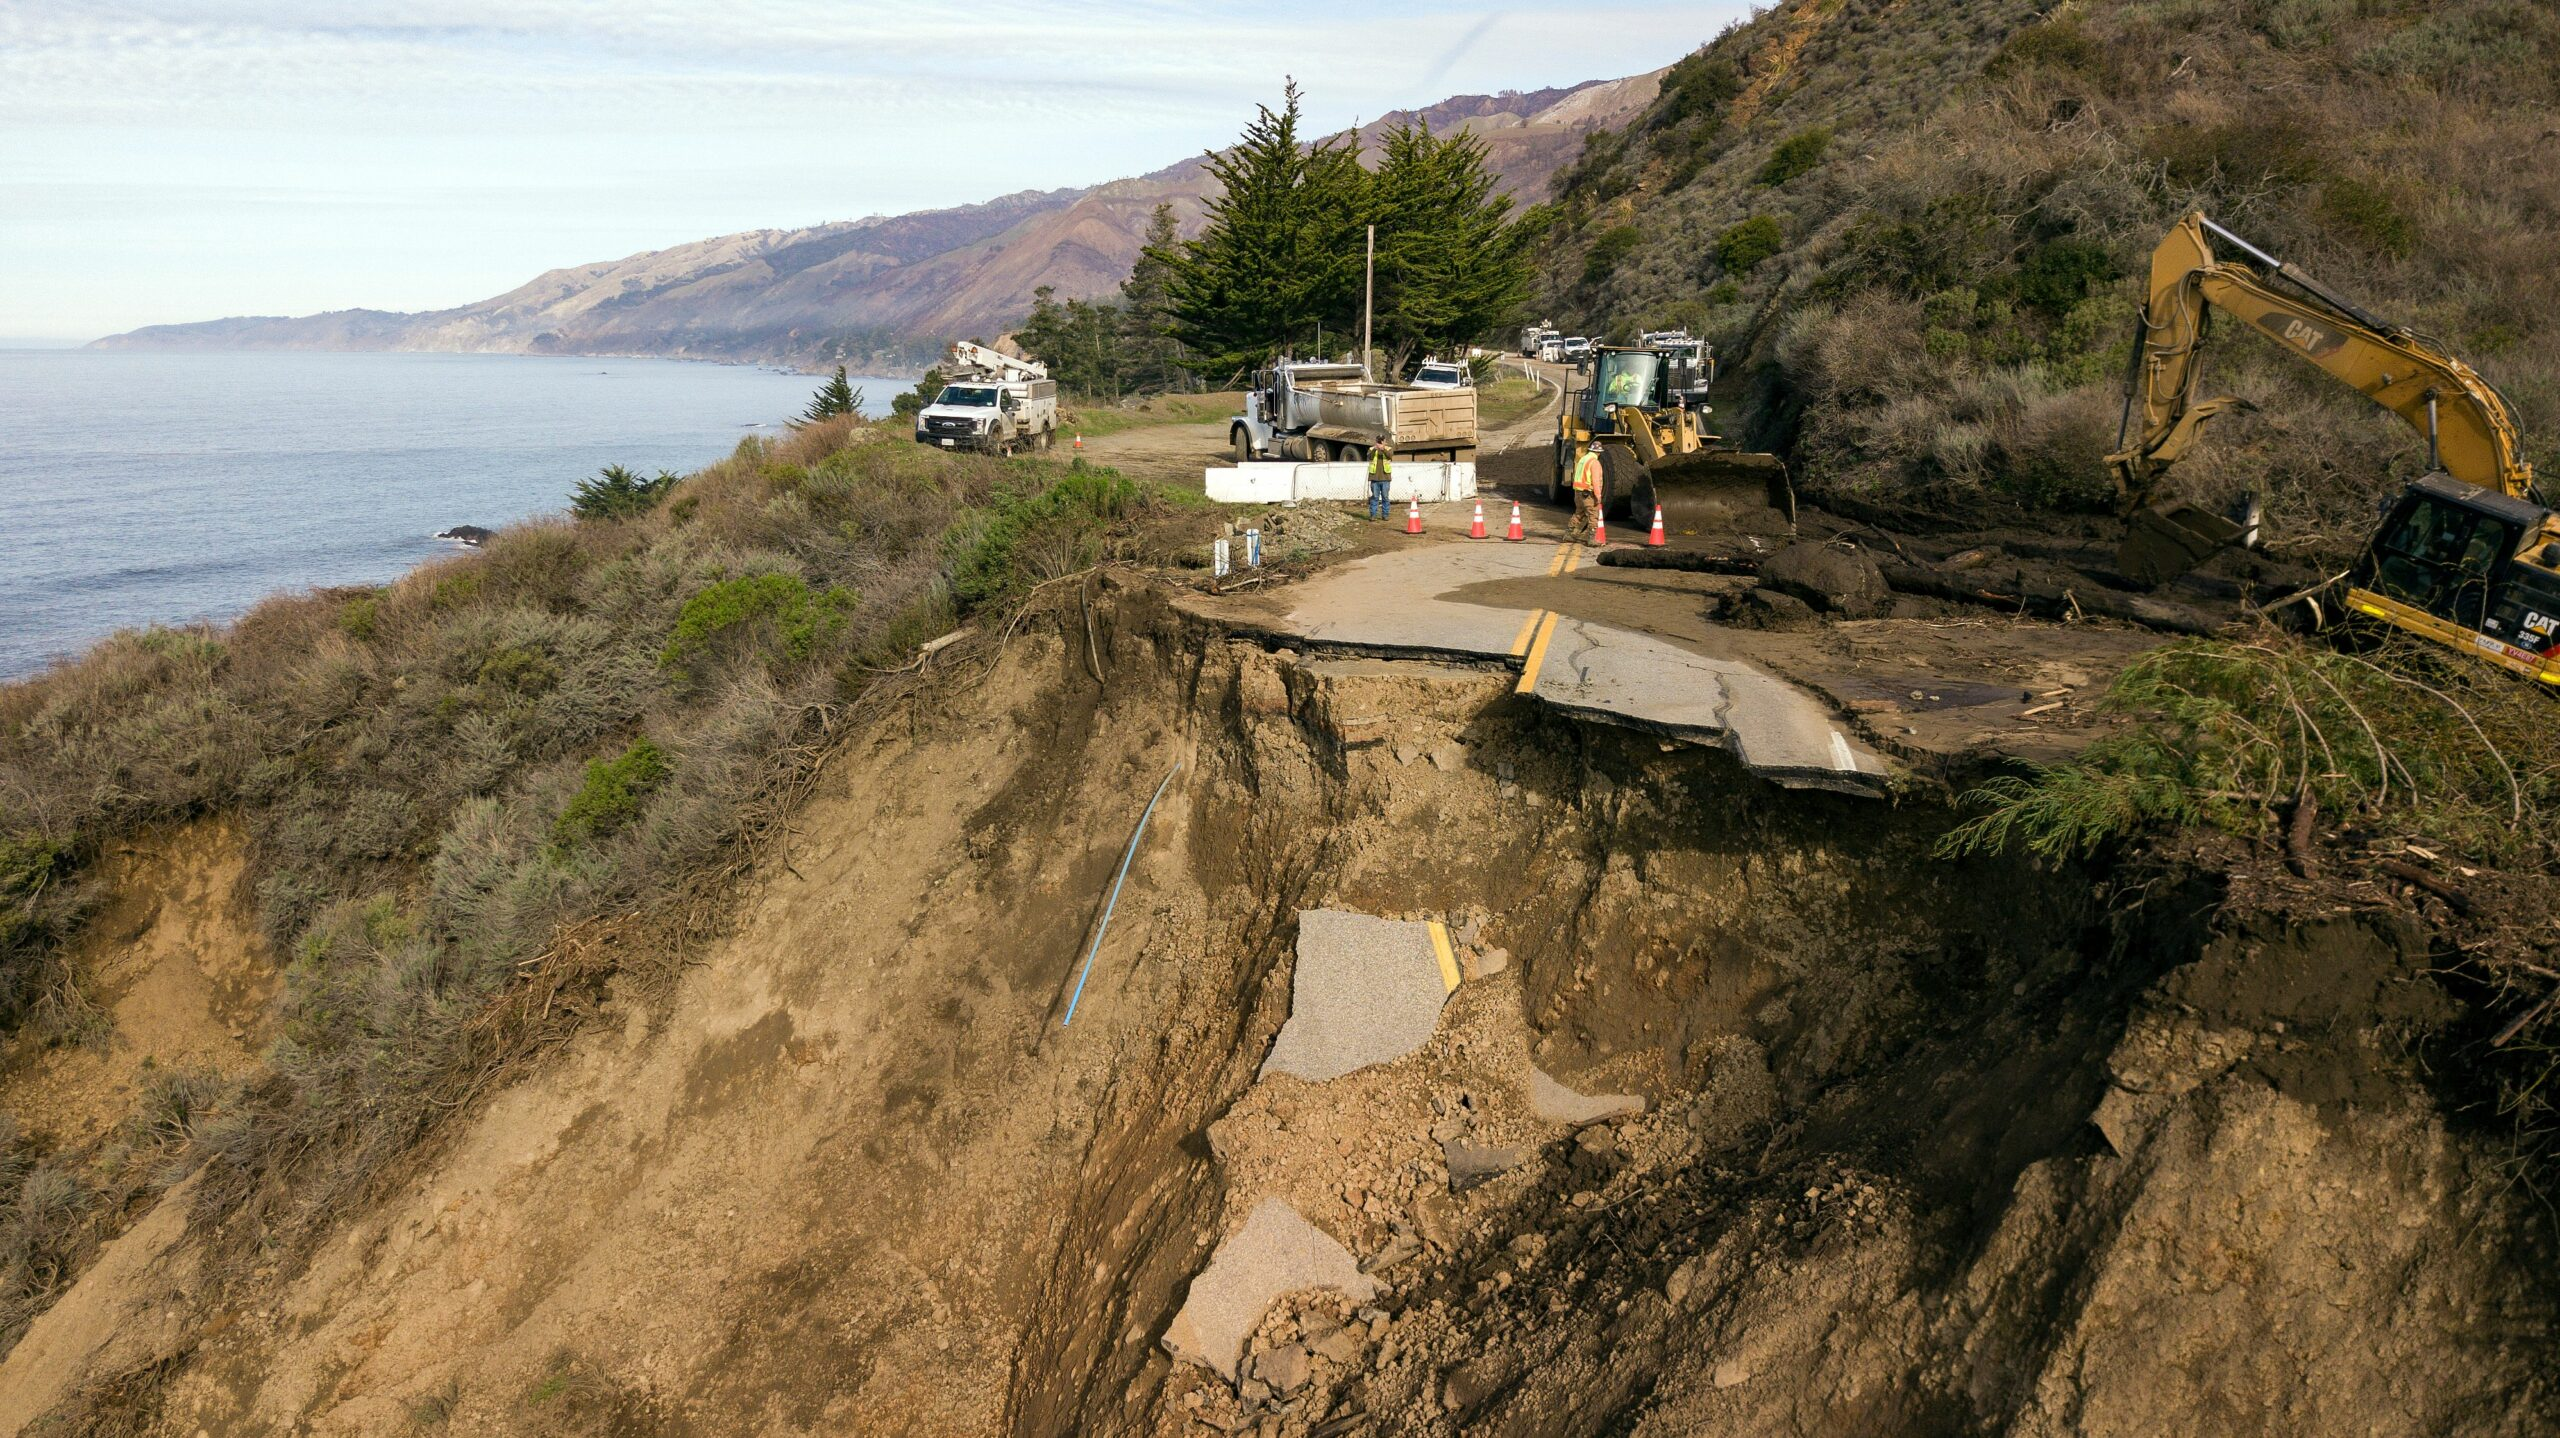 Construction crews work at the scene where a section of Highway 1 collapsed into the Pacific Ocean near Big Sur, California on Jan. 31, 2021. Credit: Josh Edelson/AFP via Getty Images